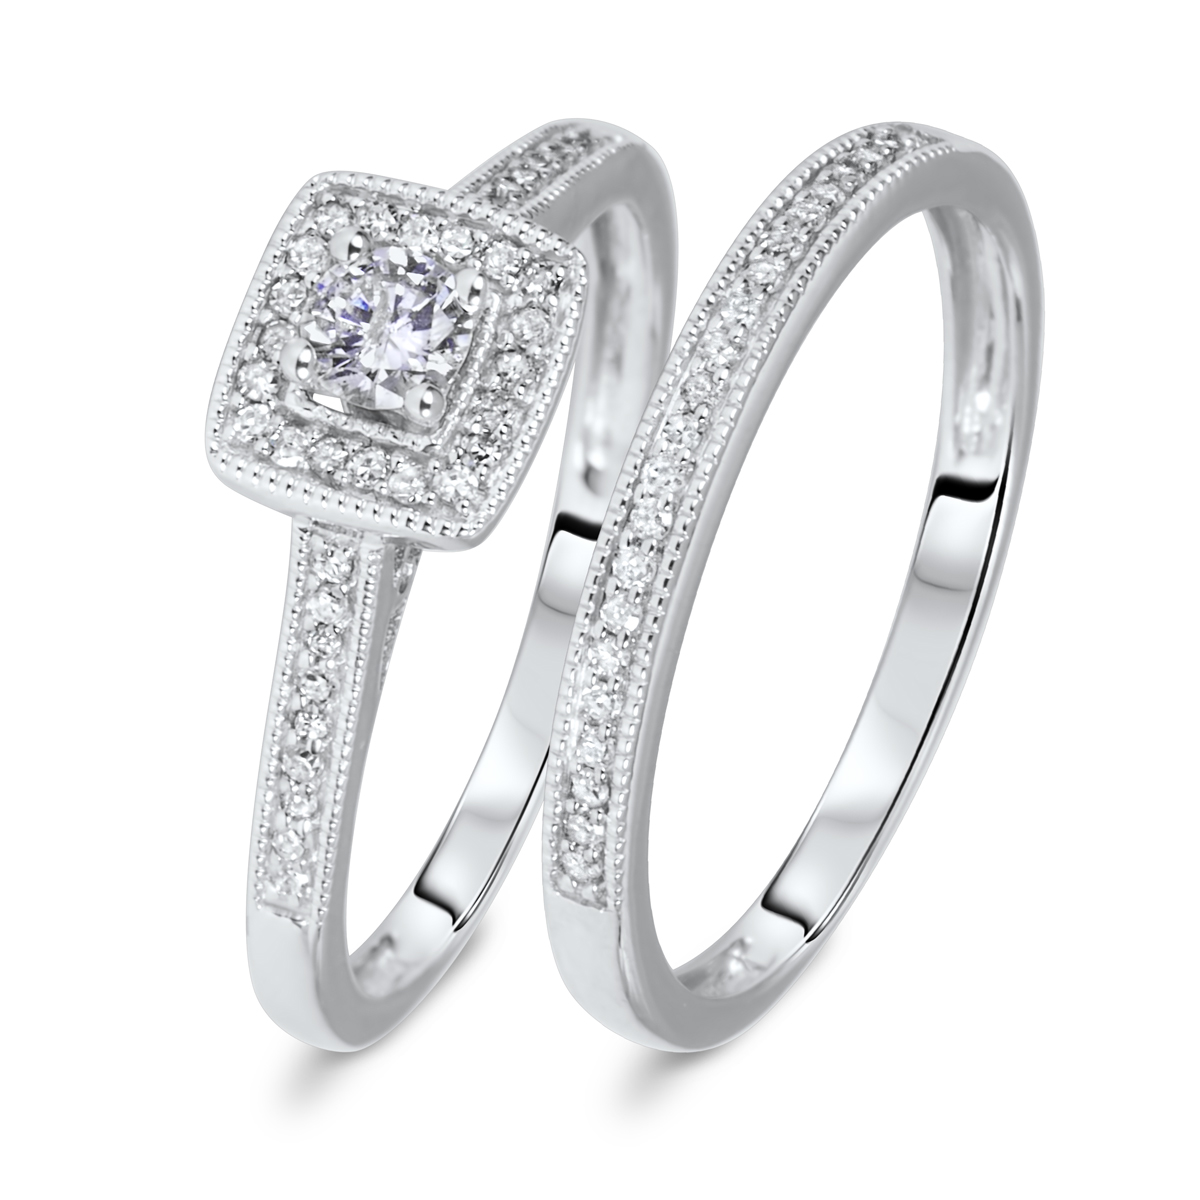 Ladies Diamond Wedding Ring Sets 1 1 3 Ct Tw Round Cut Diamond Ladies Bridal Wedding